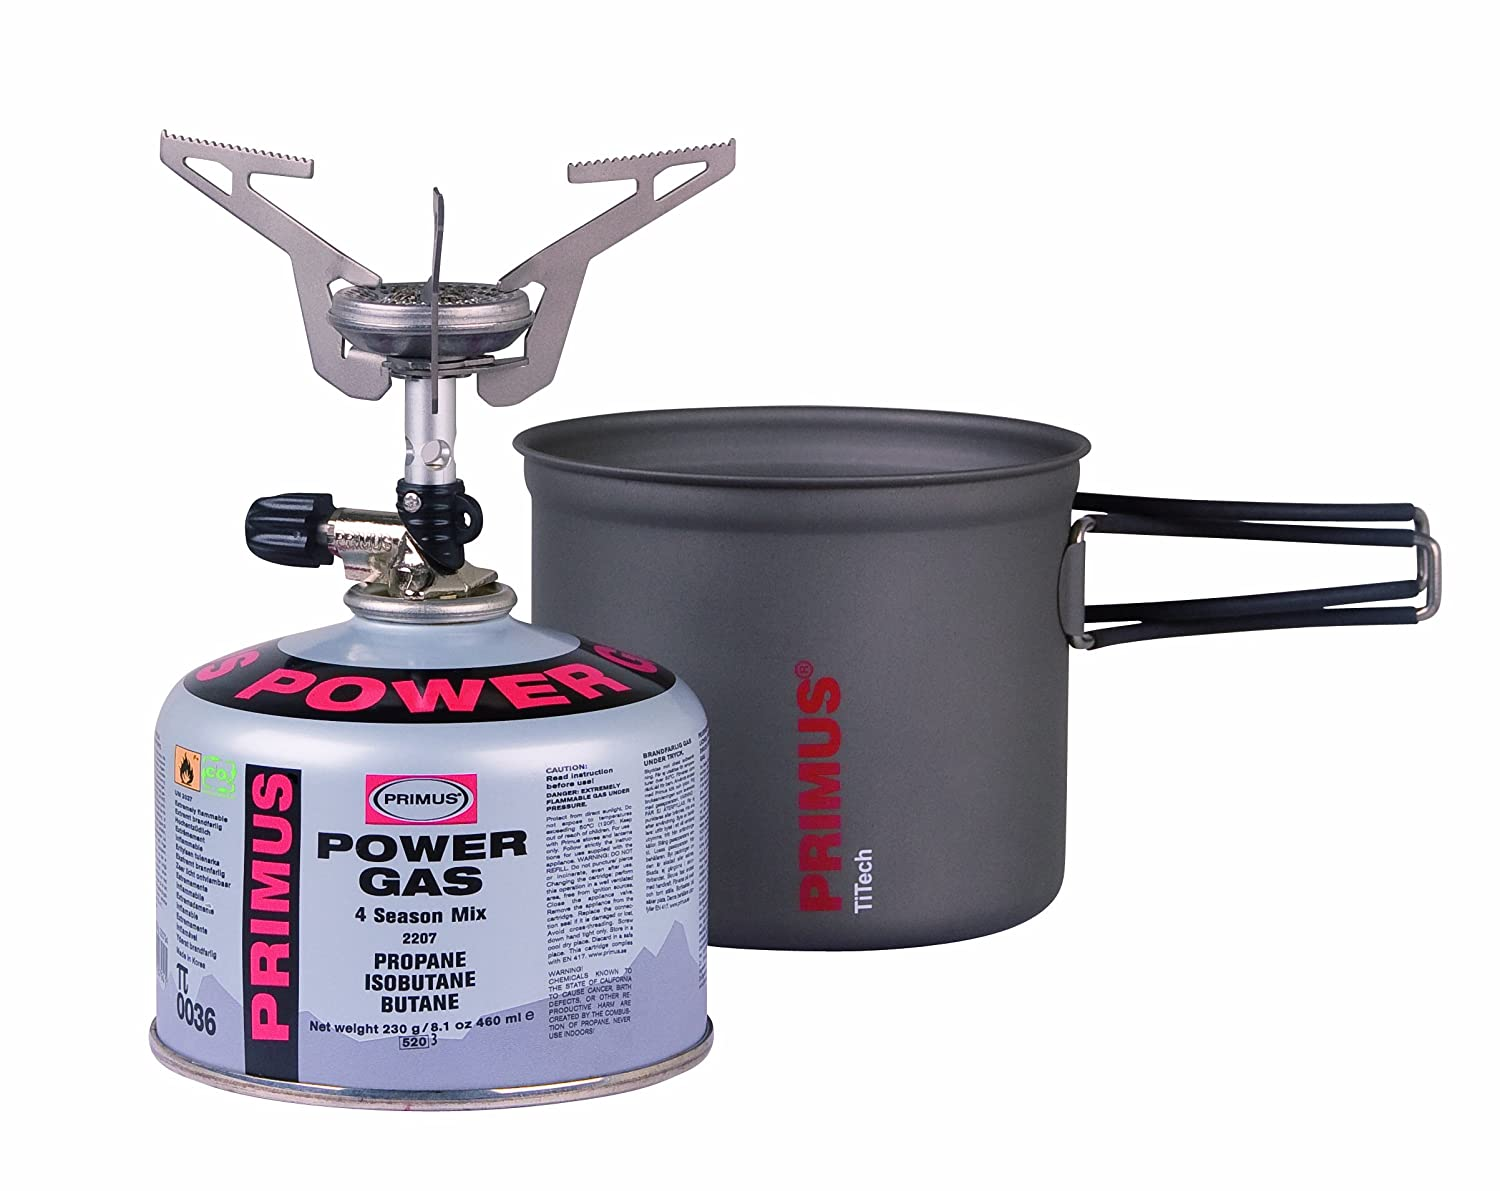 Express Stove Ti Kit Set